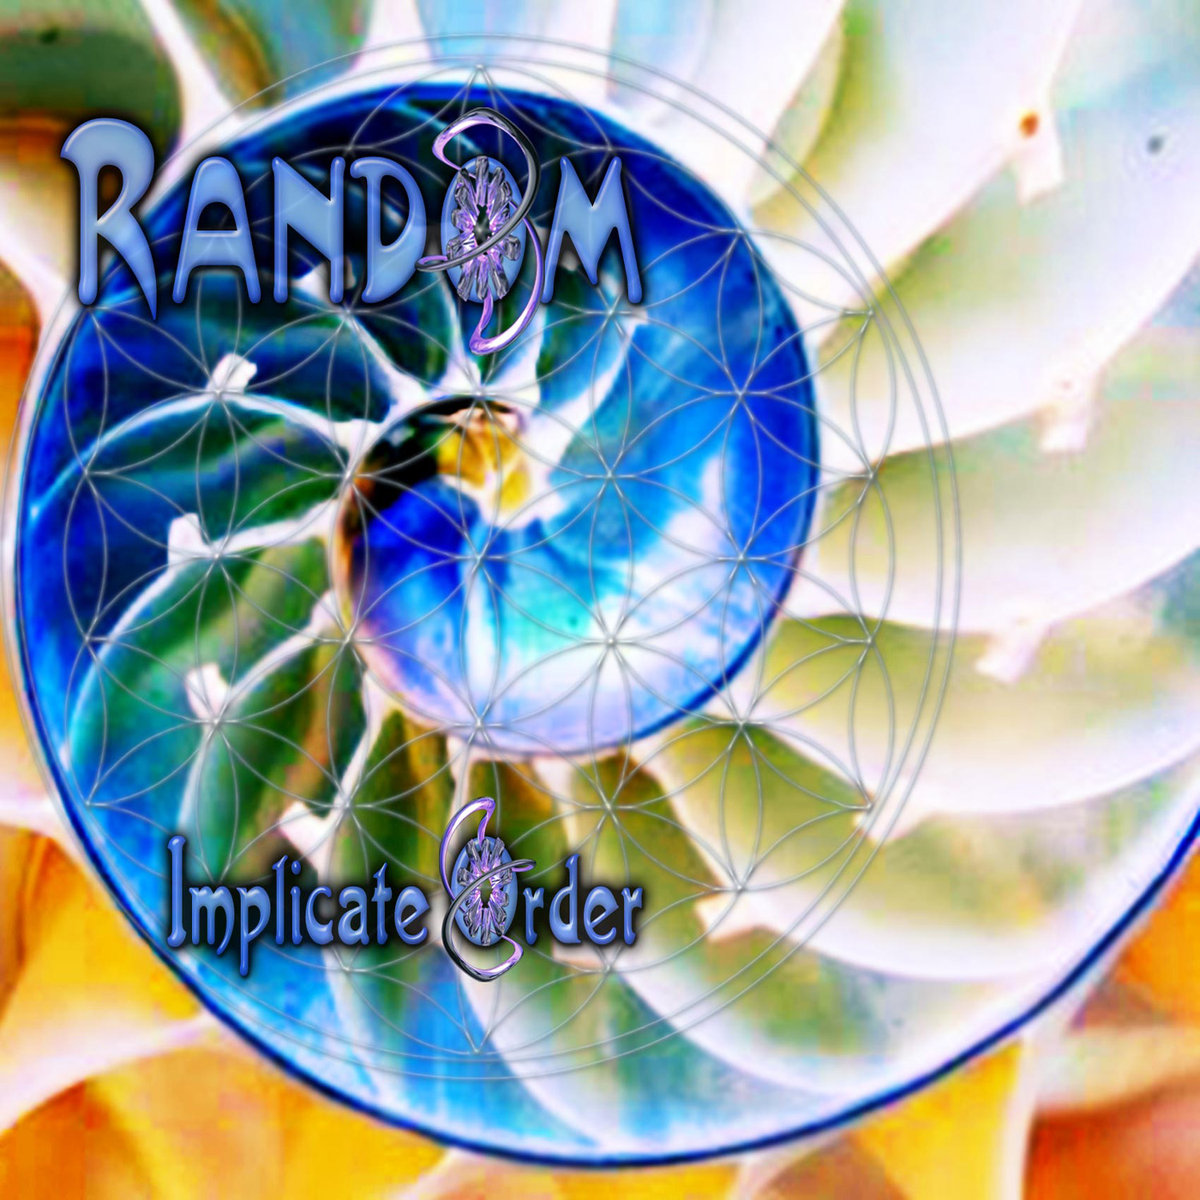 Random - Life & Everything @ 'The Implicate Order' album (electronic, goa)